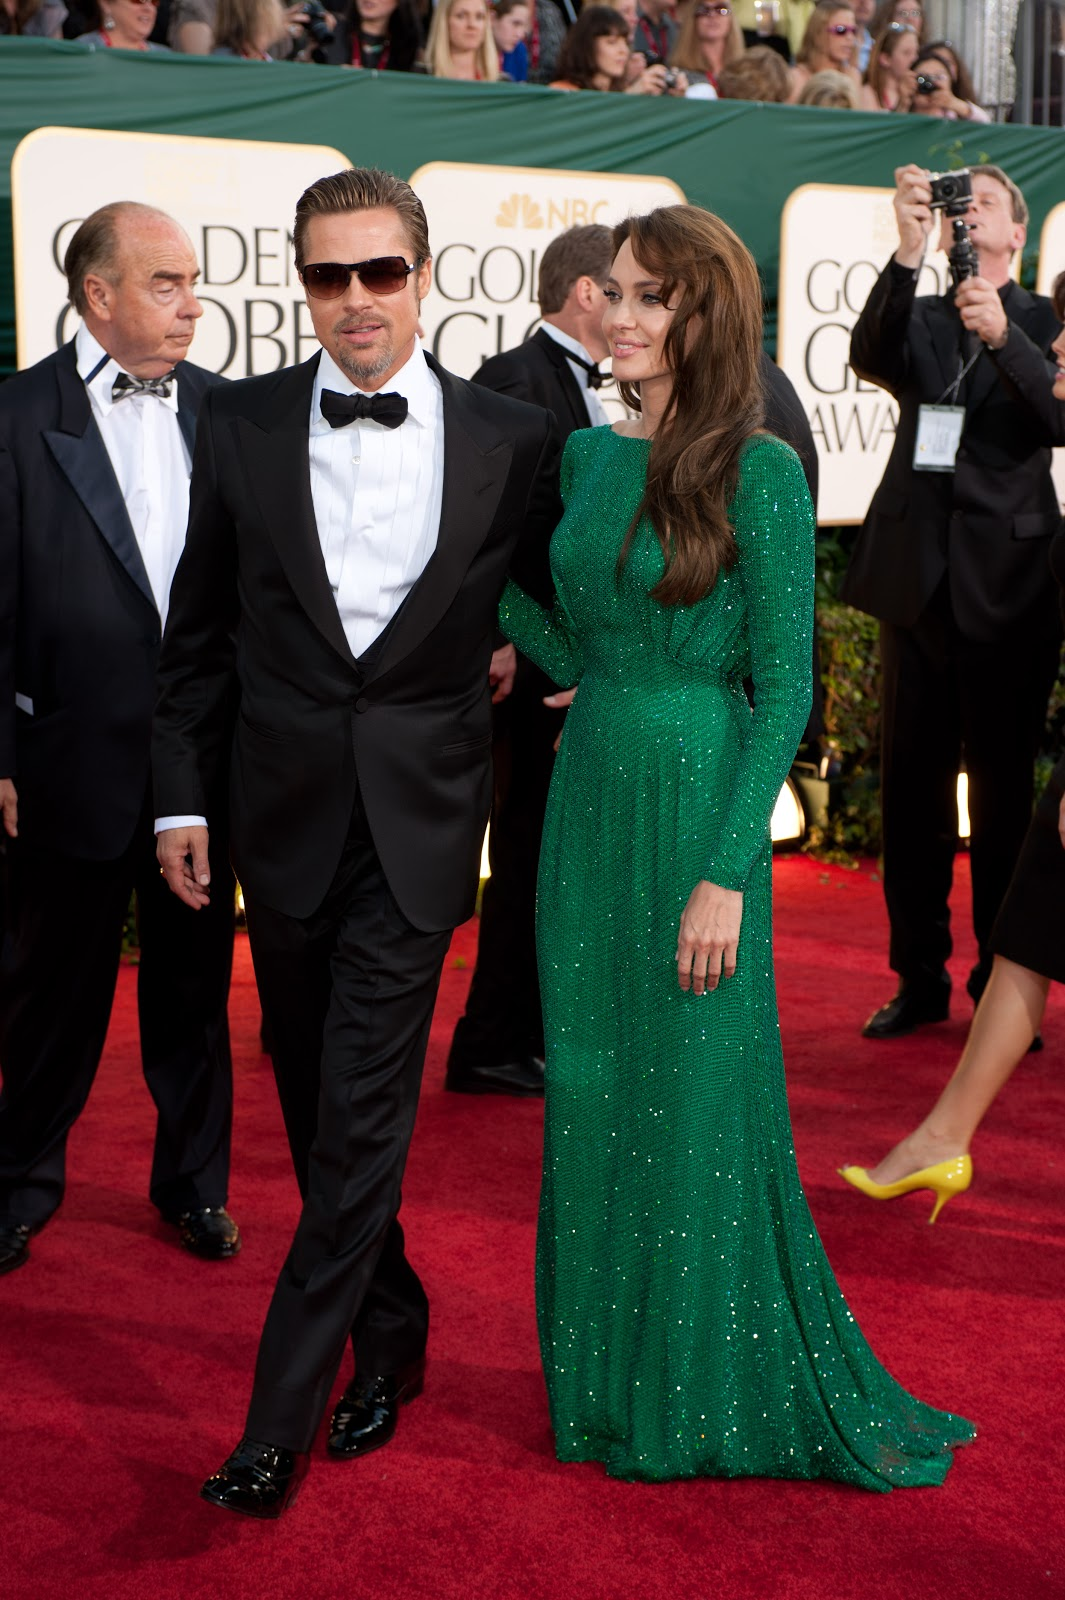 http://1.bp.blogspot.com/_nyB2OeEAzKU/TTcLw6Je3lI/AAAAAAAATL8/WDbuoZLofpg/s1600/2011+Golden+Globes+68th+men+Brad+Pitt+and+Angelina+Jolie+in+green+dress.jpg